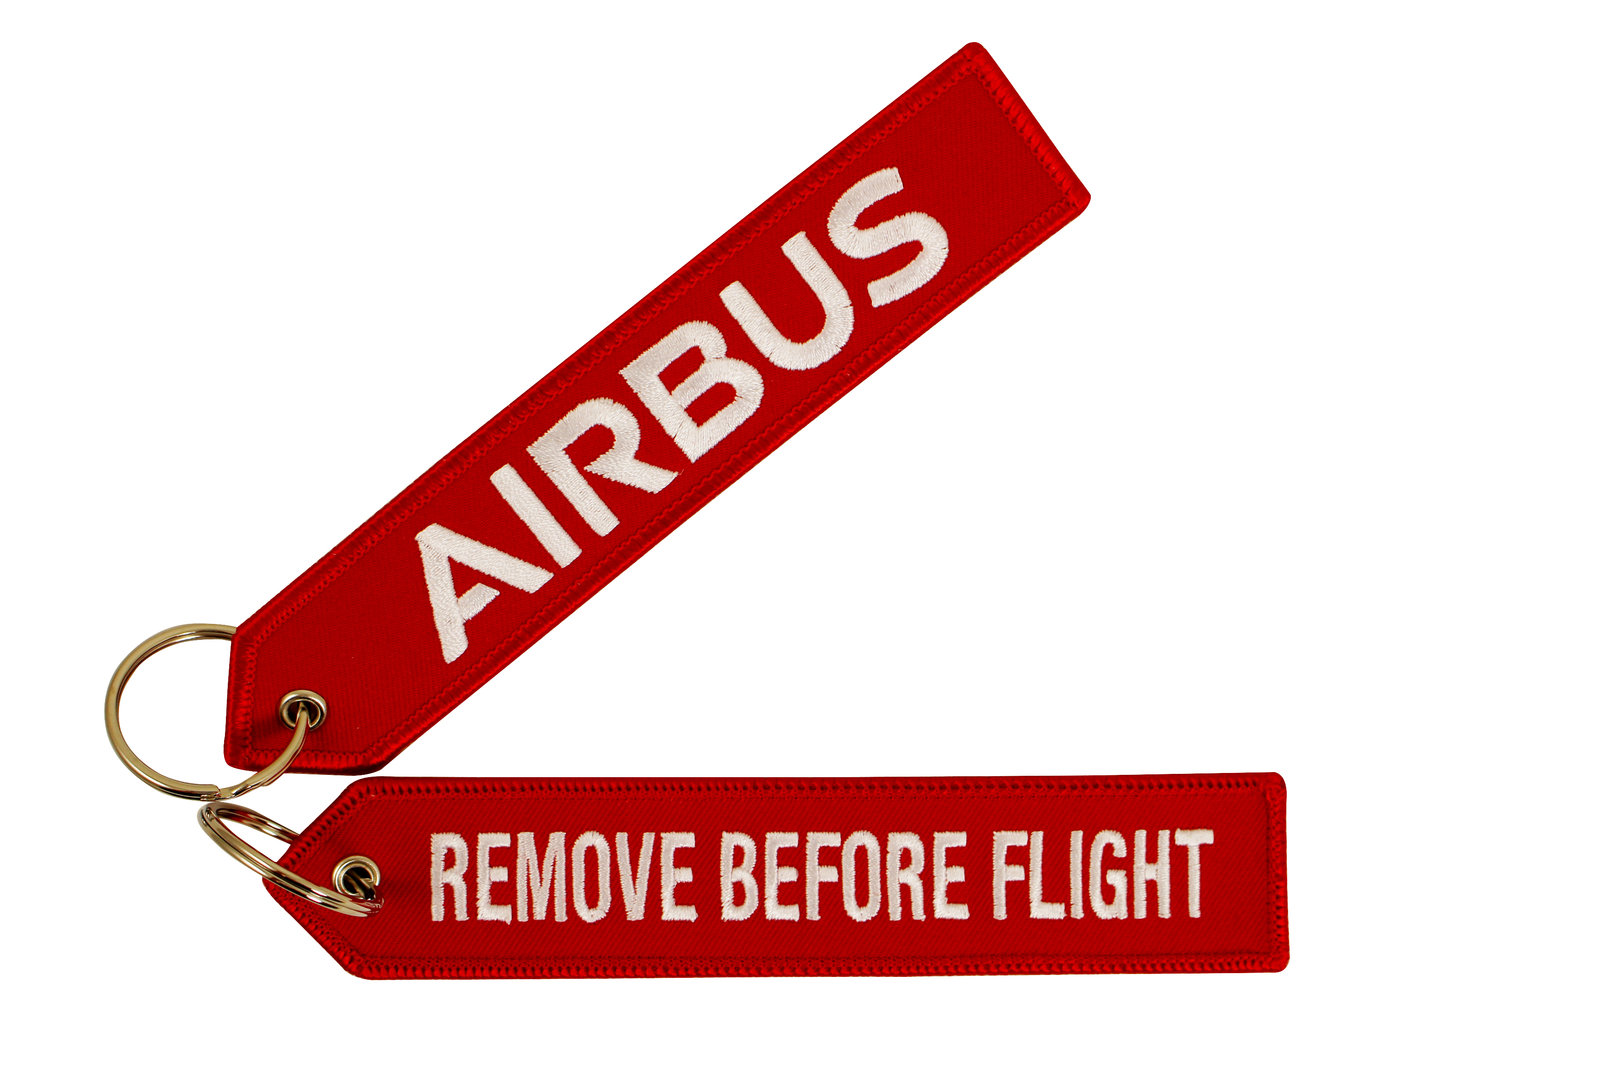 Airbus Remove Before Flight rot